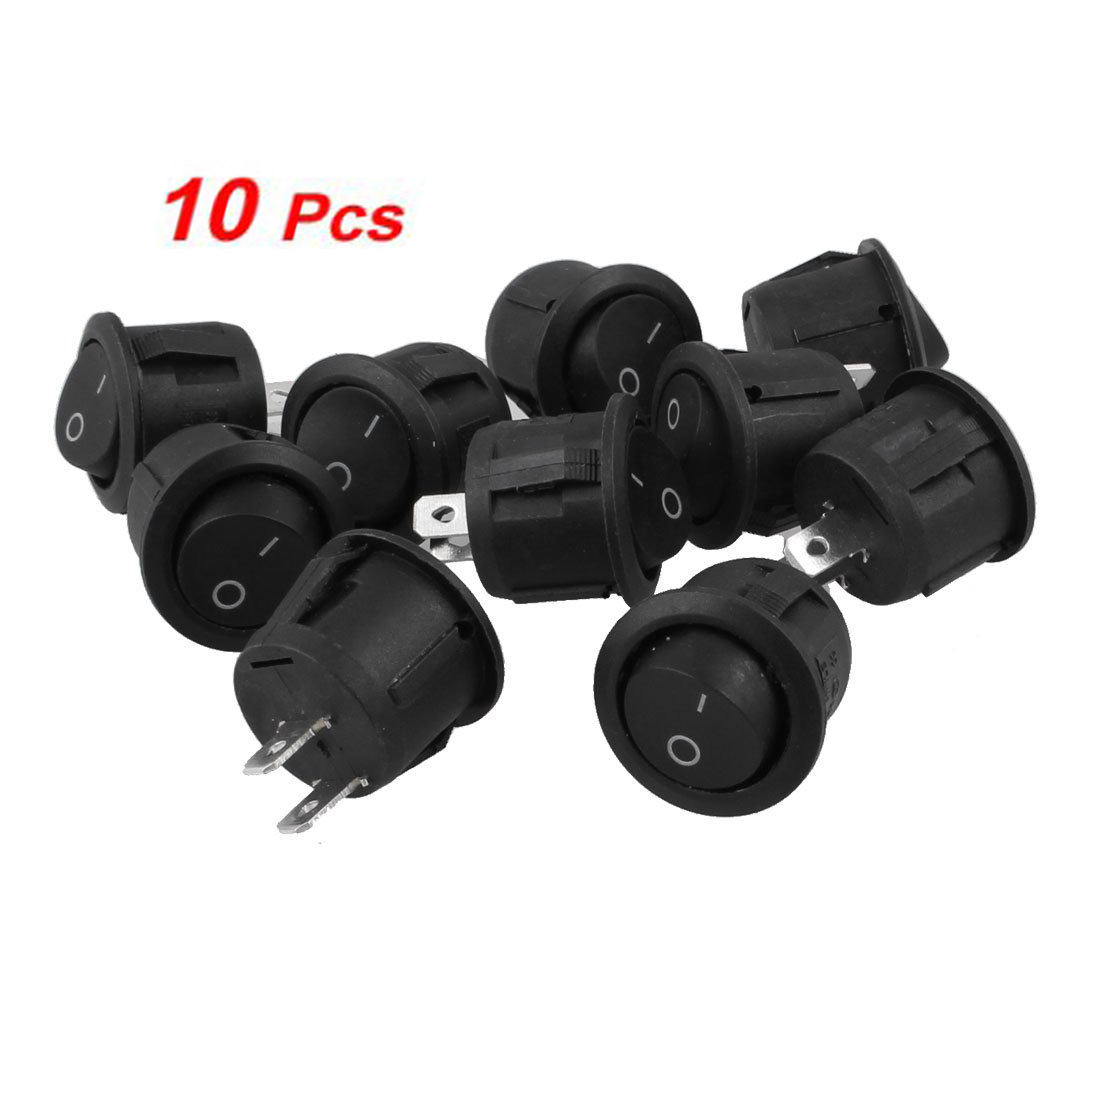 Promotion! 10Pcs AC 6A 10A 250V On Off Snap in SPST Round Boat Rocker Switch Black 5pcs black push button mini switch 6a 10a 250v kcd1 101 2pin snap in on off rocker switch 21 15mm